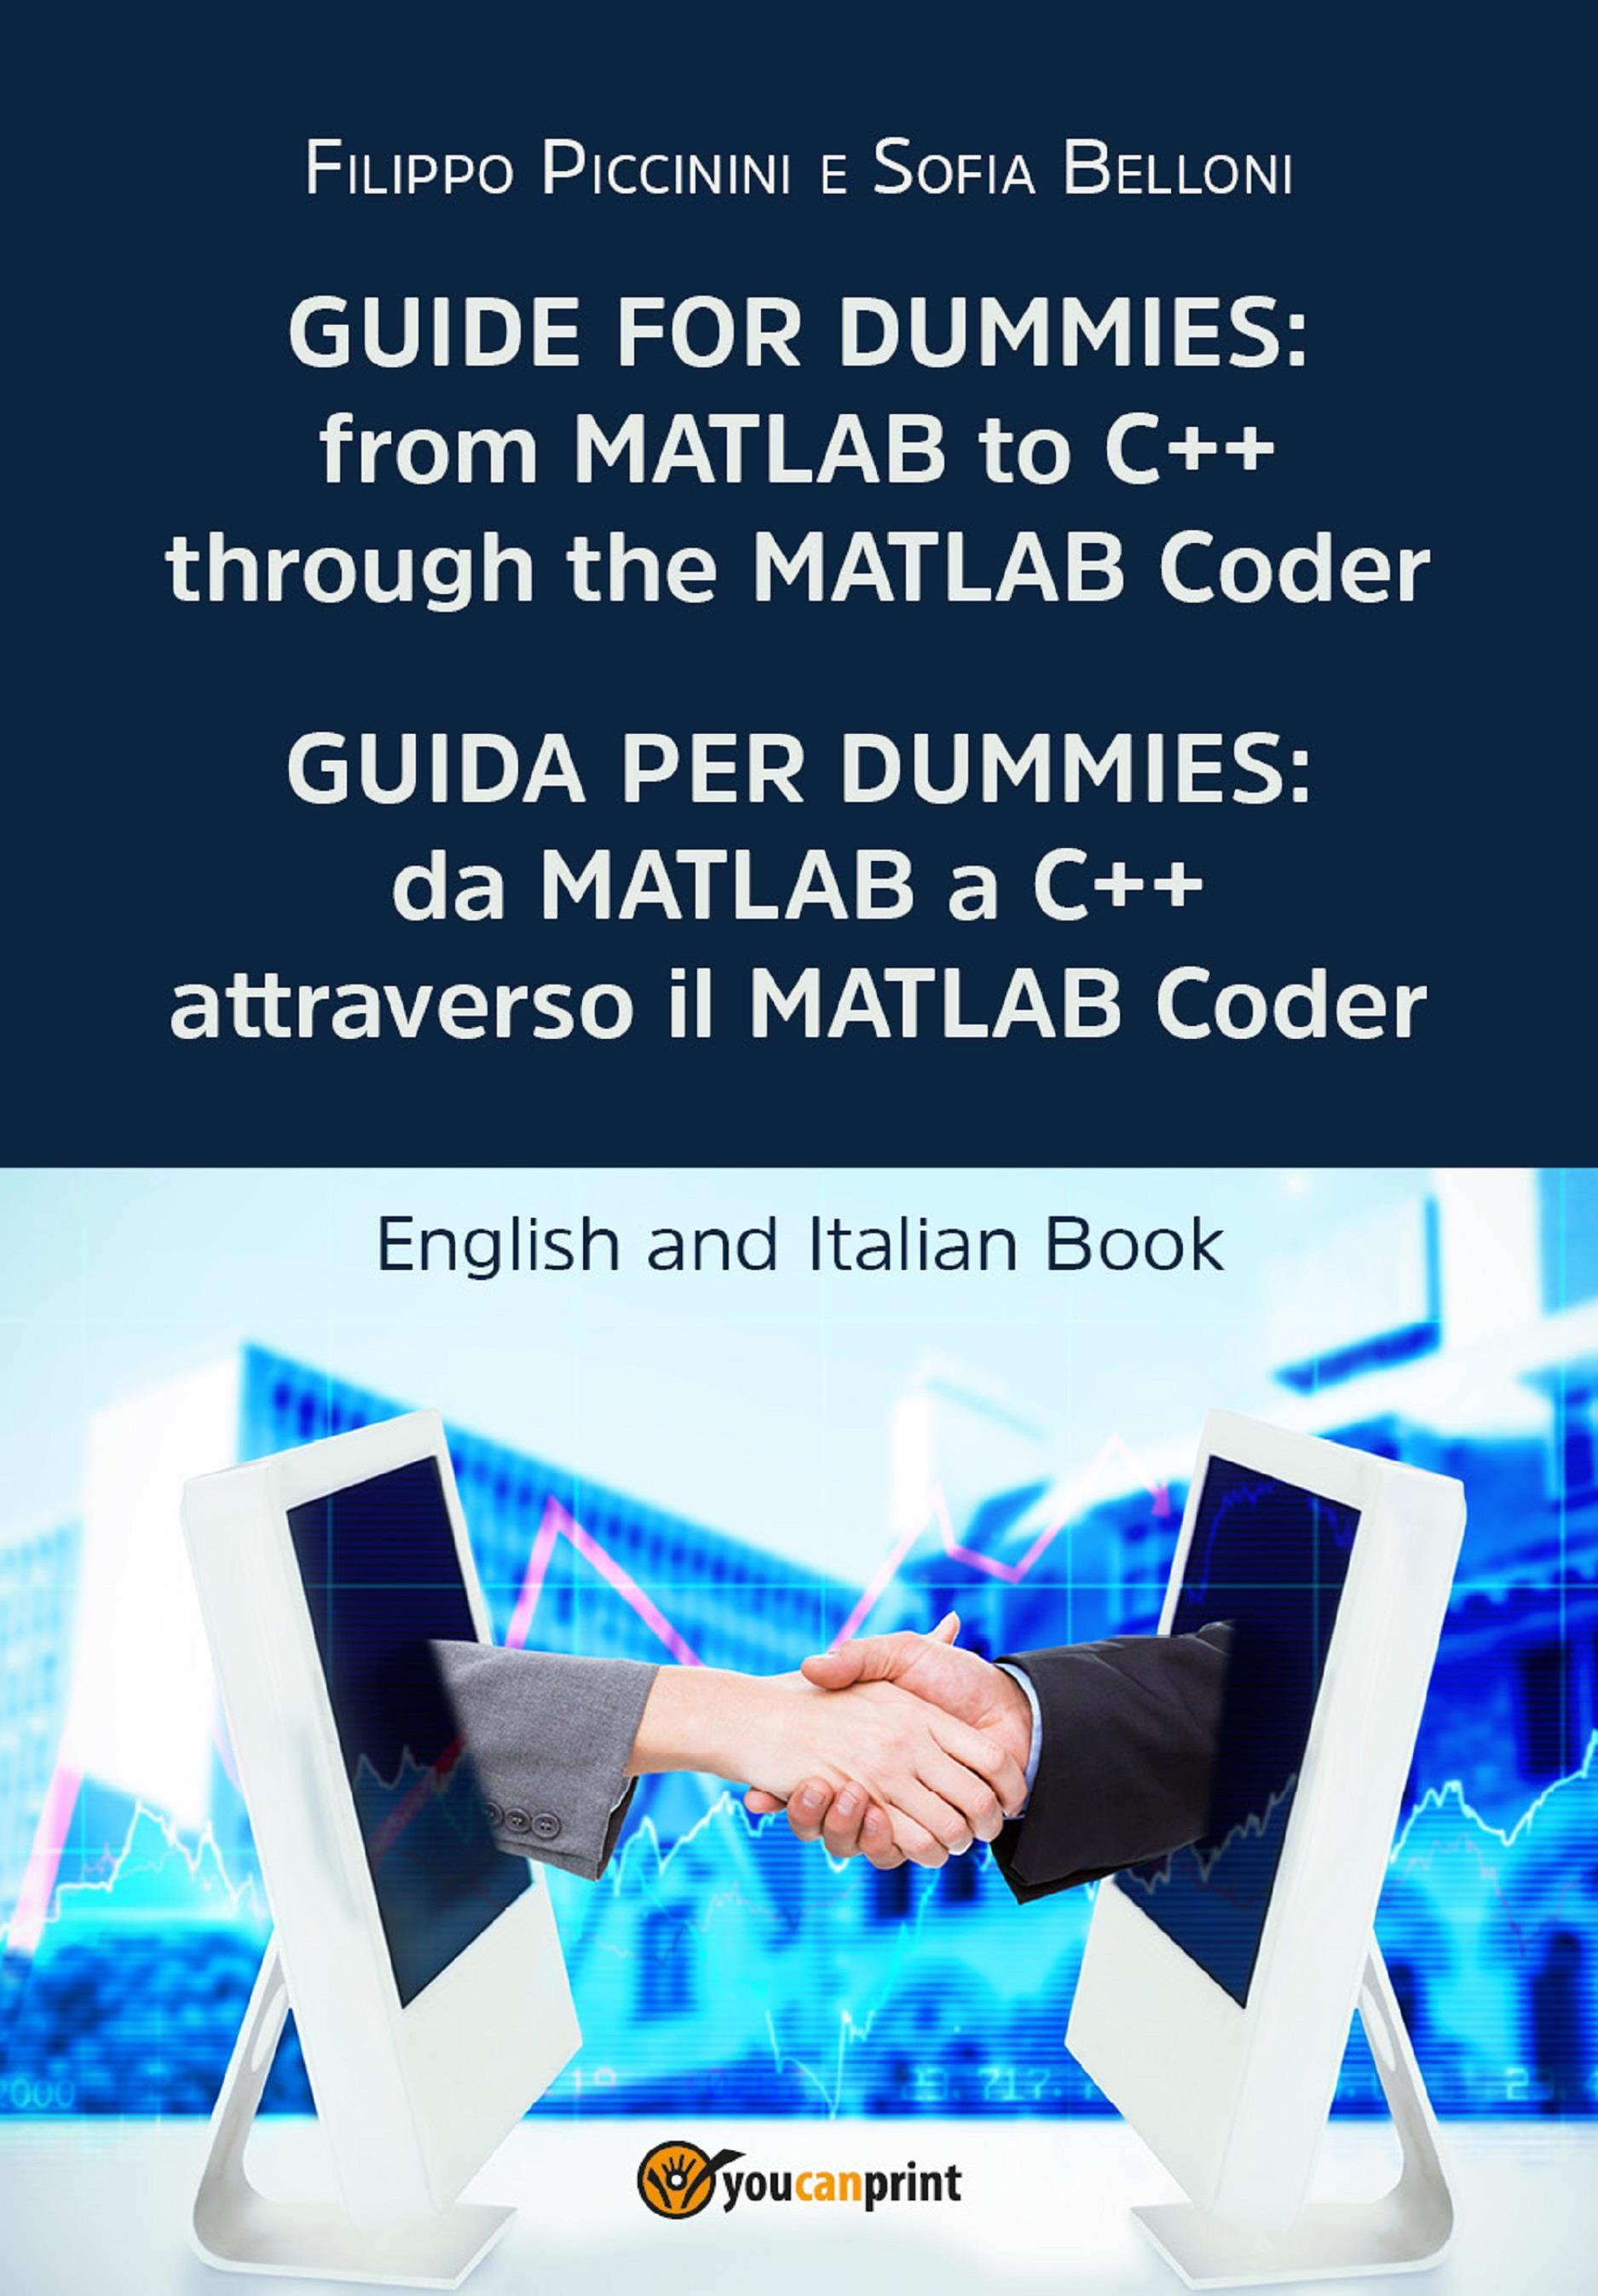 Guide for Dummies: from MATLAB to C++ through the MATLAB Coder